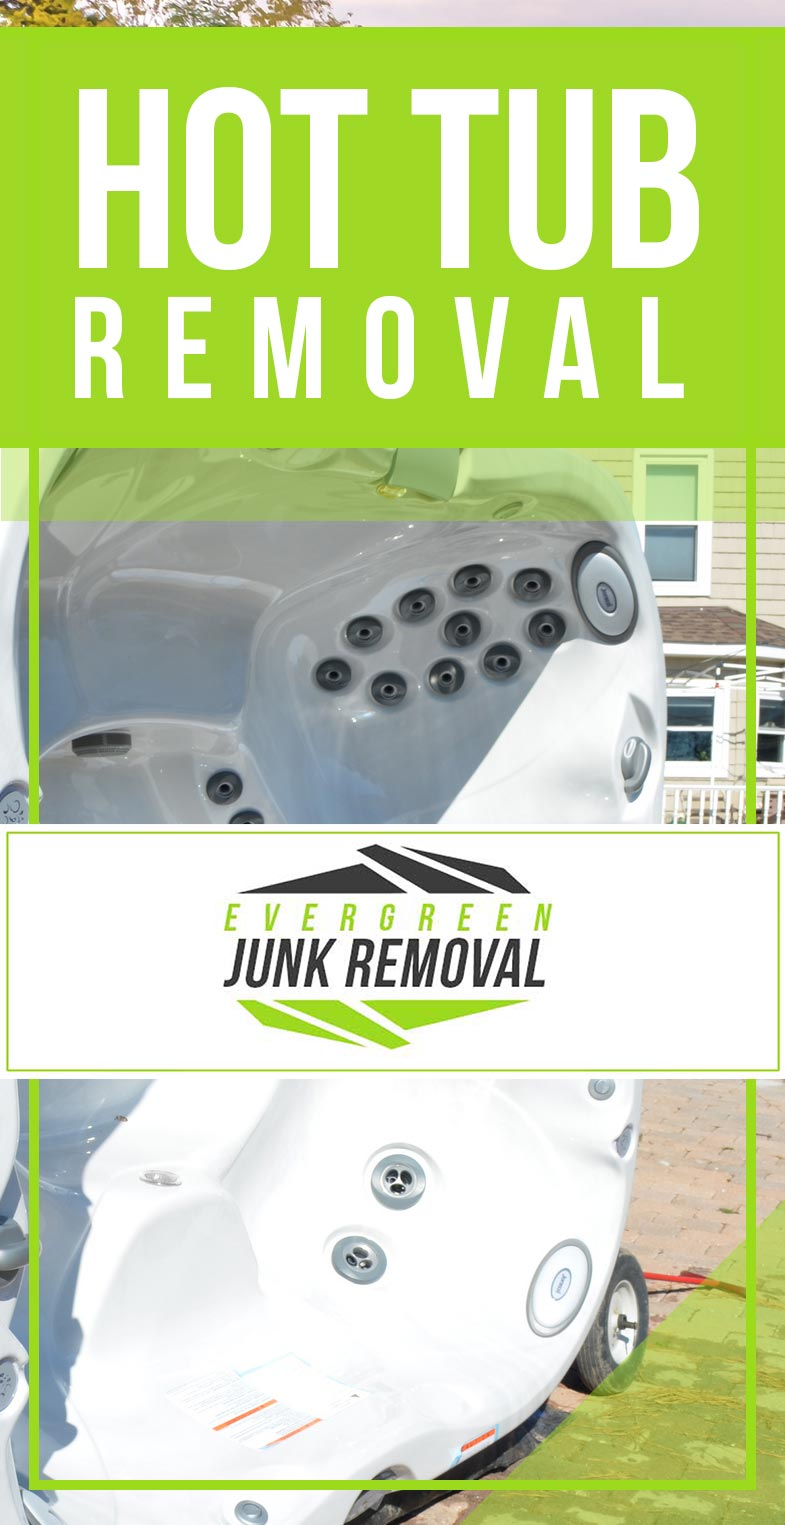 Newcastle Hot Tub Removal